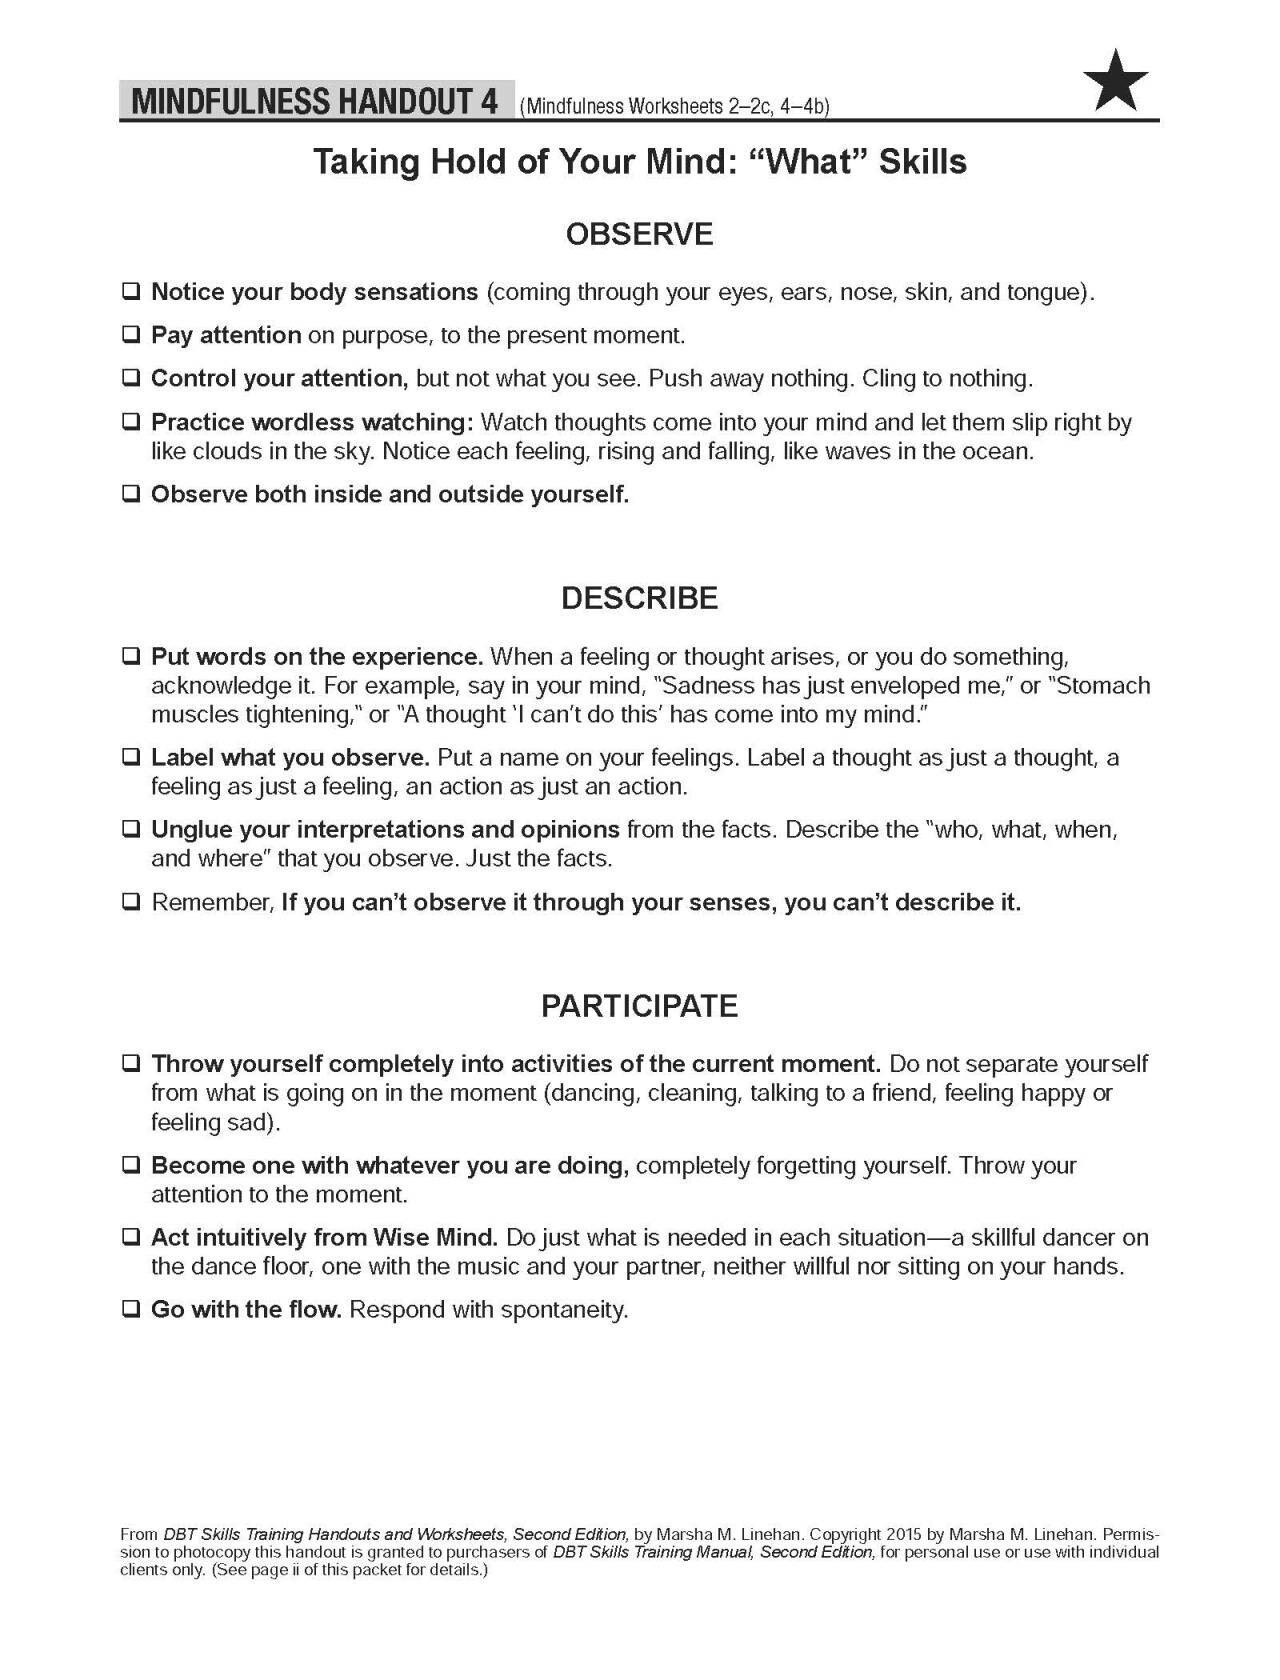 Mindfulness Handout 4 Work Related Counseling Worksheets